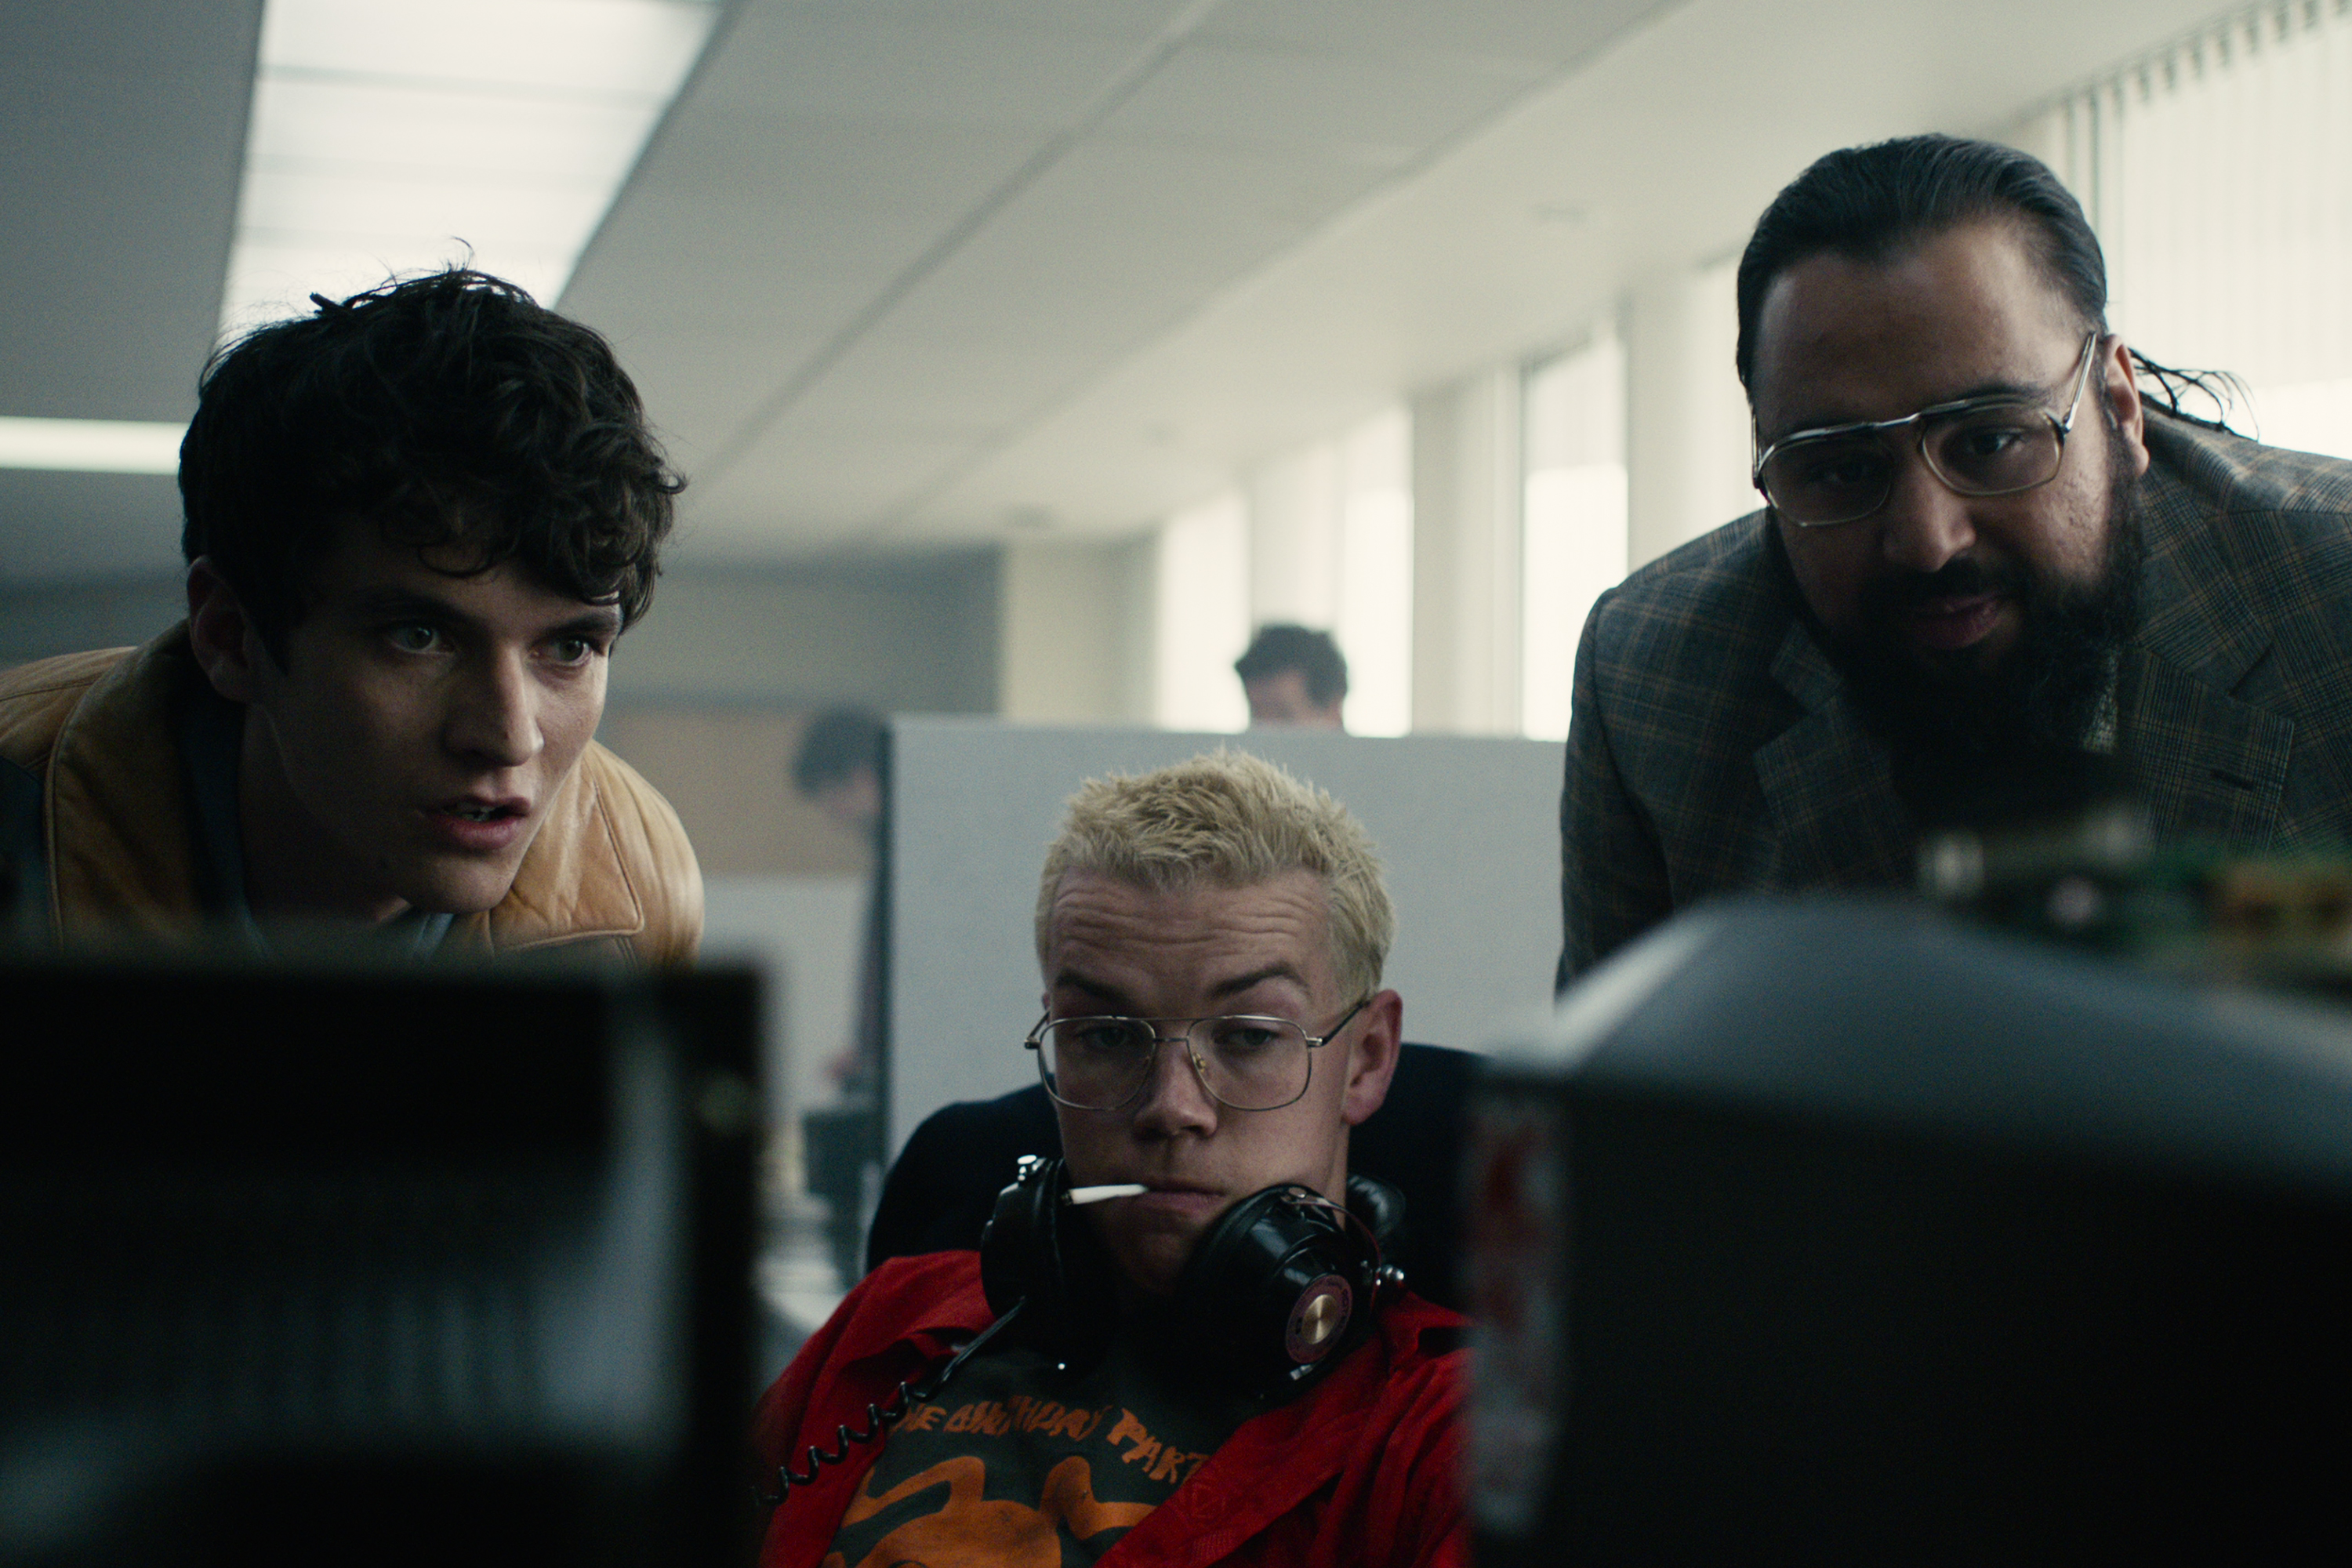 The grisly Bandersnatch idea that didn't make the cut as revealed by creator Charlie Brooker